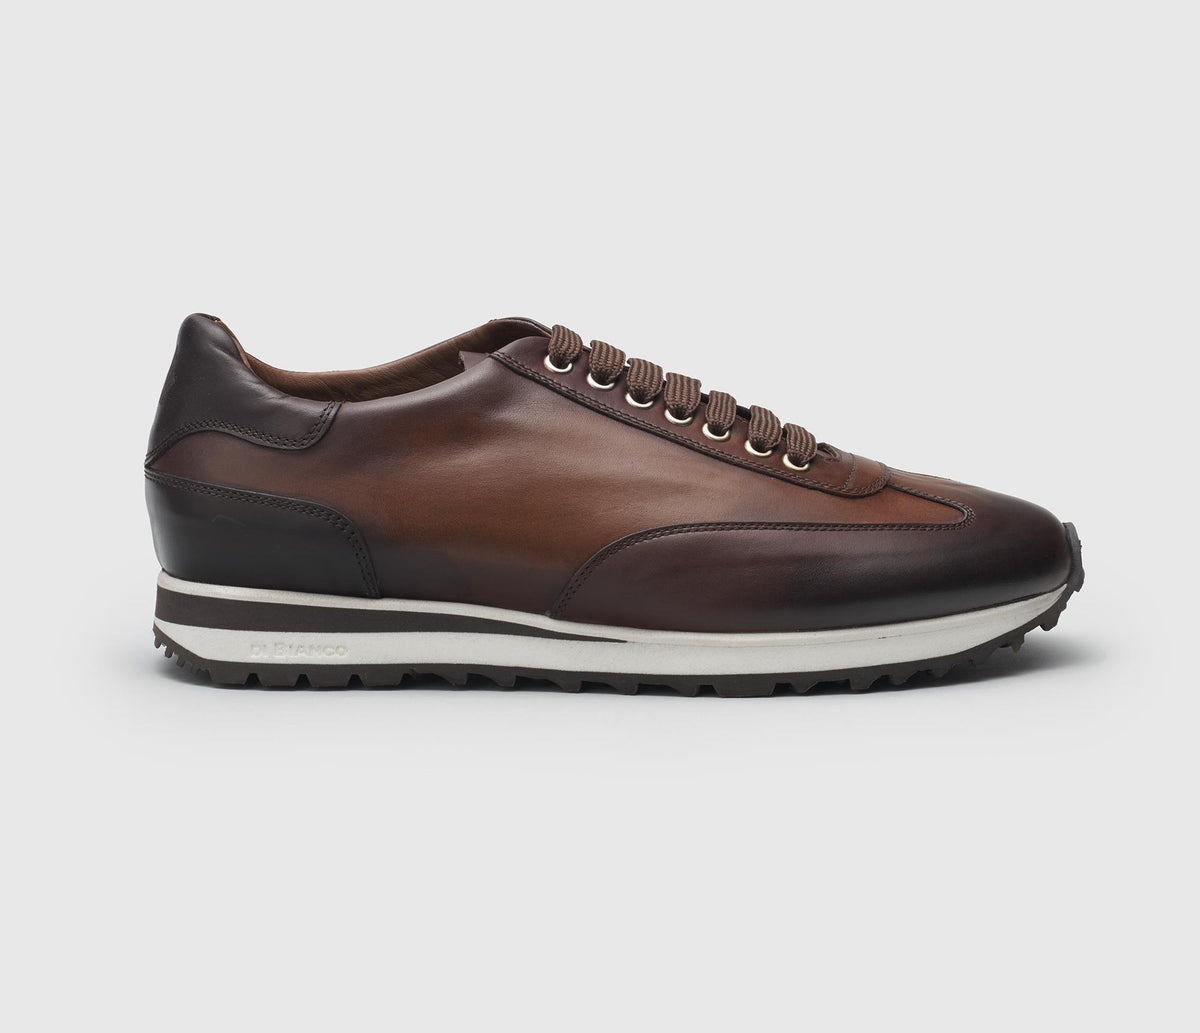 The Trieste Reverse Sombrero Leather Sneakers for Men